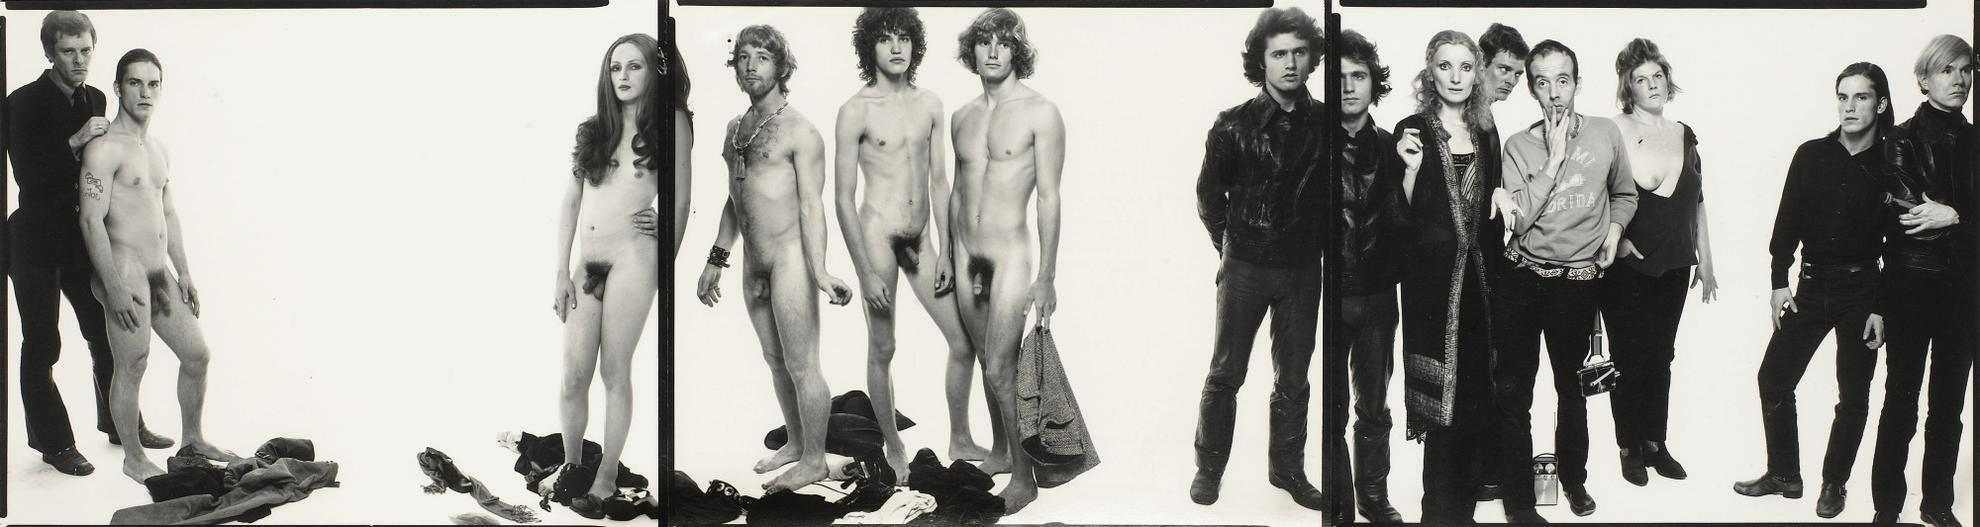 Richard Avedon-Andy Warhol And Members Of The Factory-1969